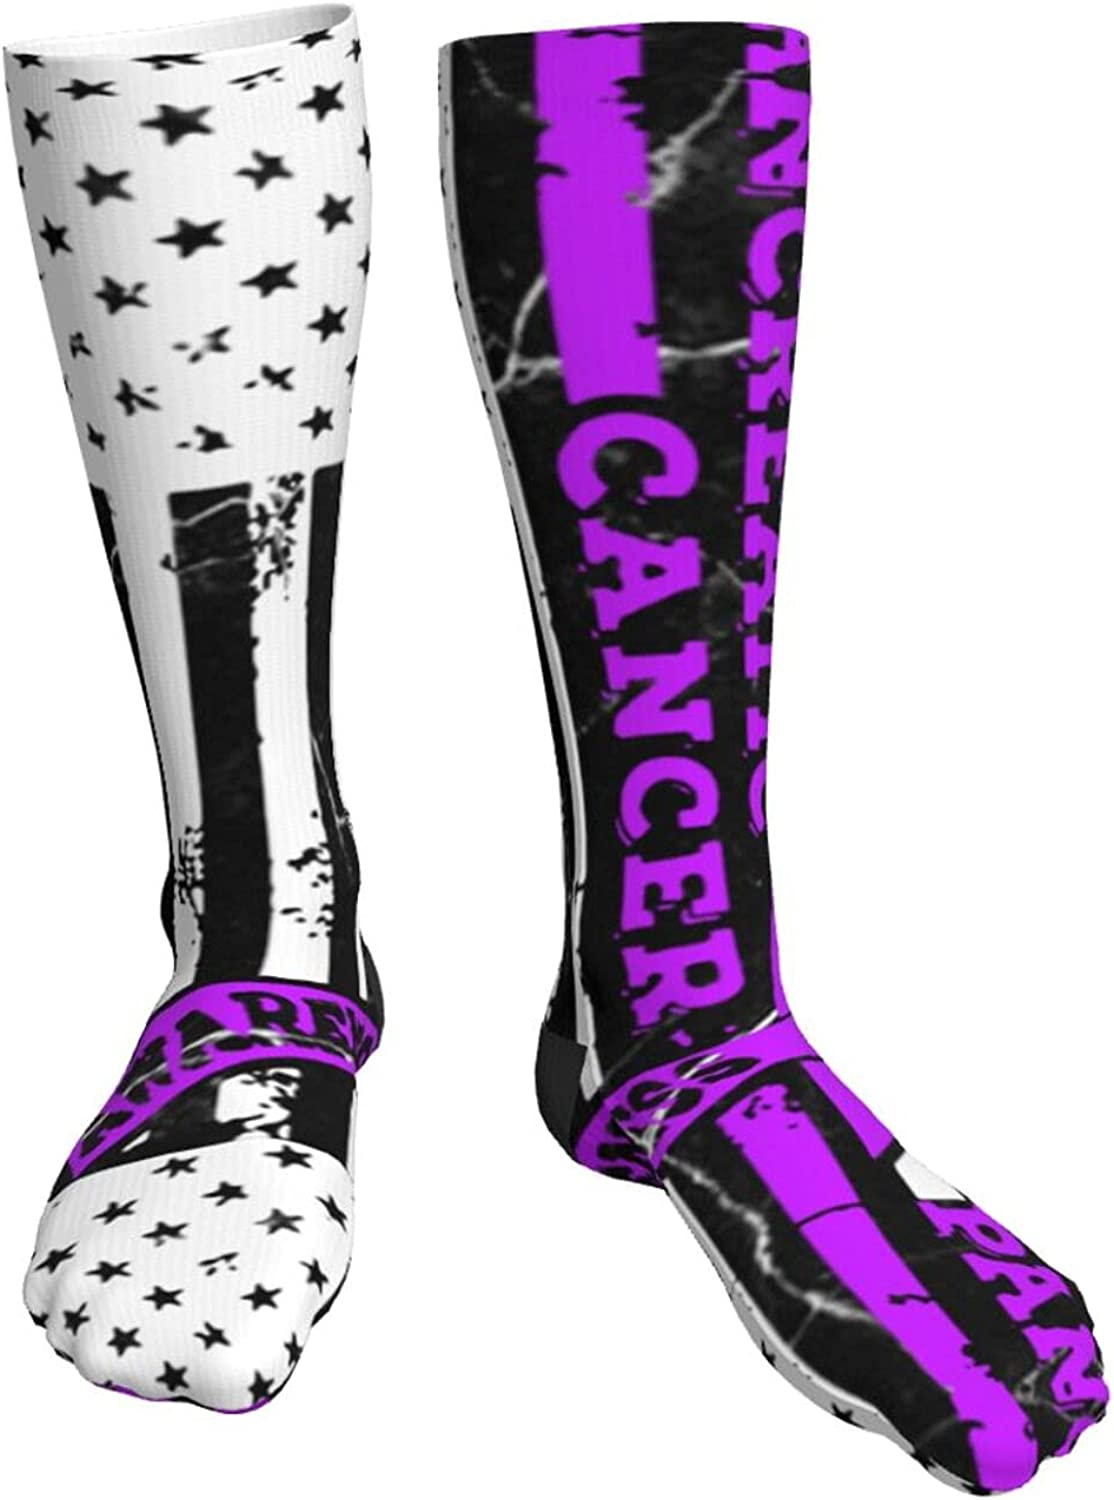 We OFFer at cheap prices Remember 911 Twin Towers Men's Hi Socks Compression Knee Ranking TOP11 Women's